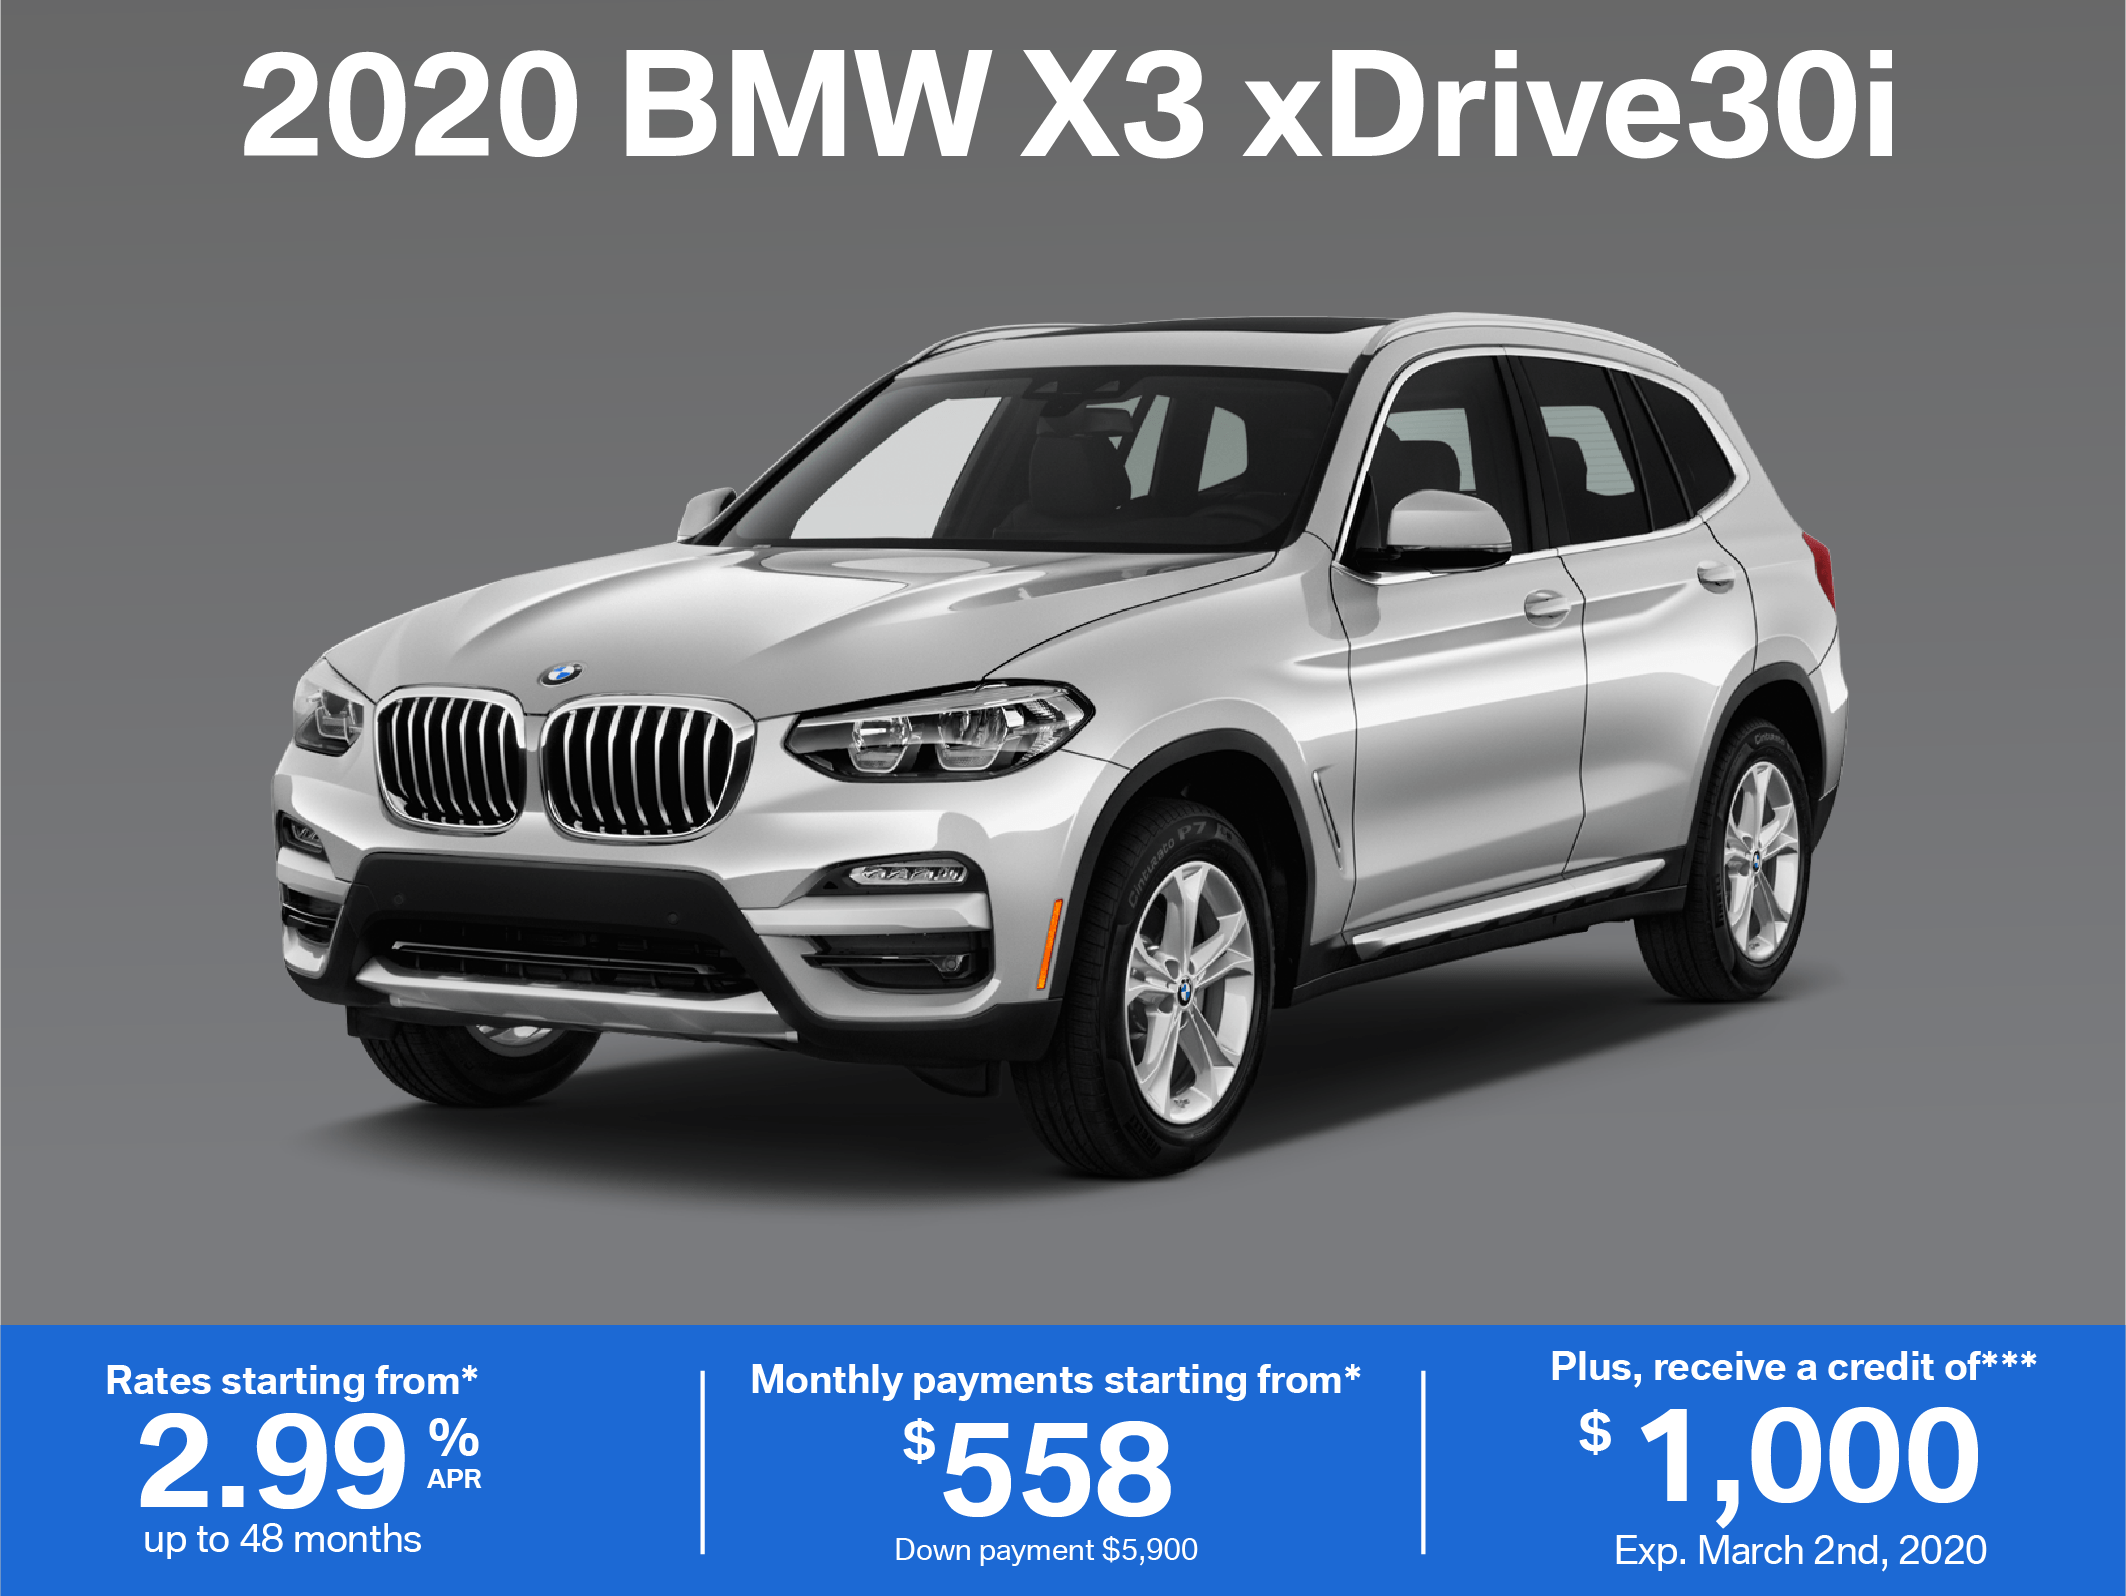 Lease the 2020 BMW X3 xDrive30i